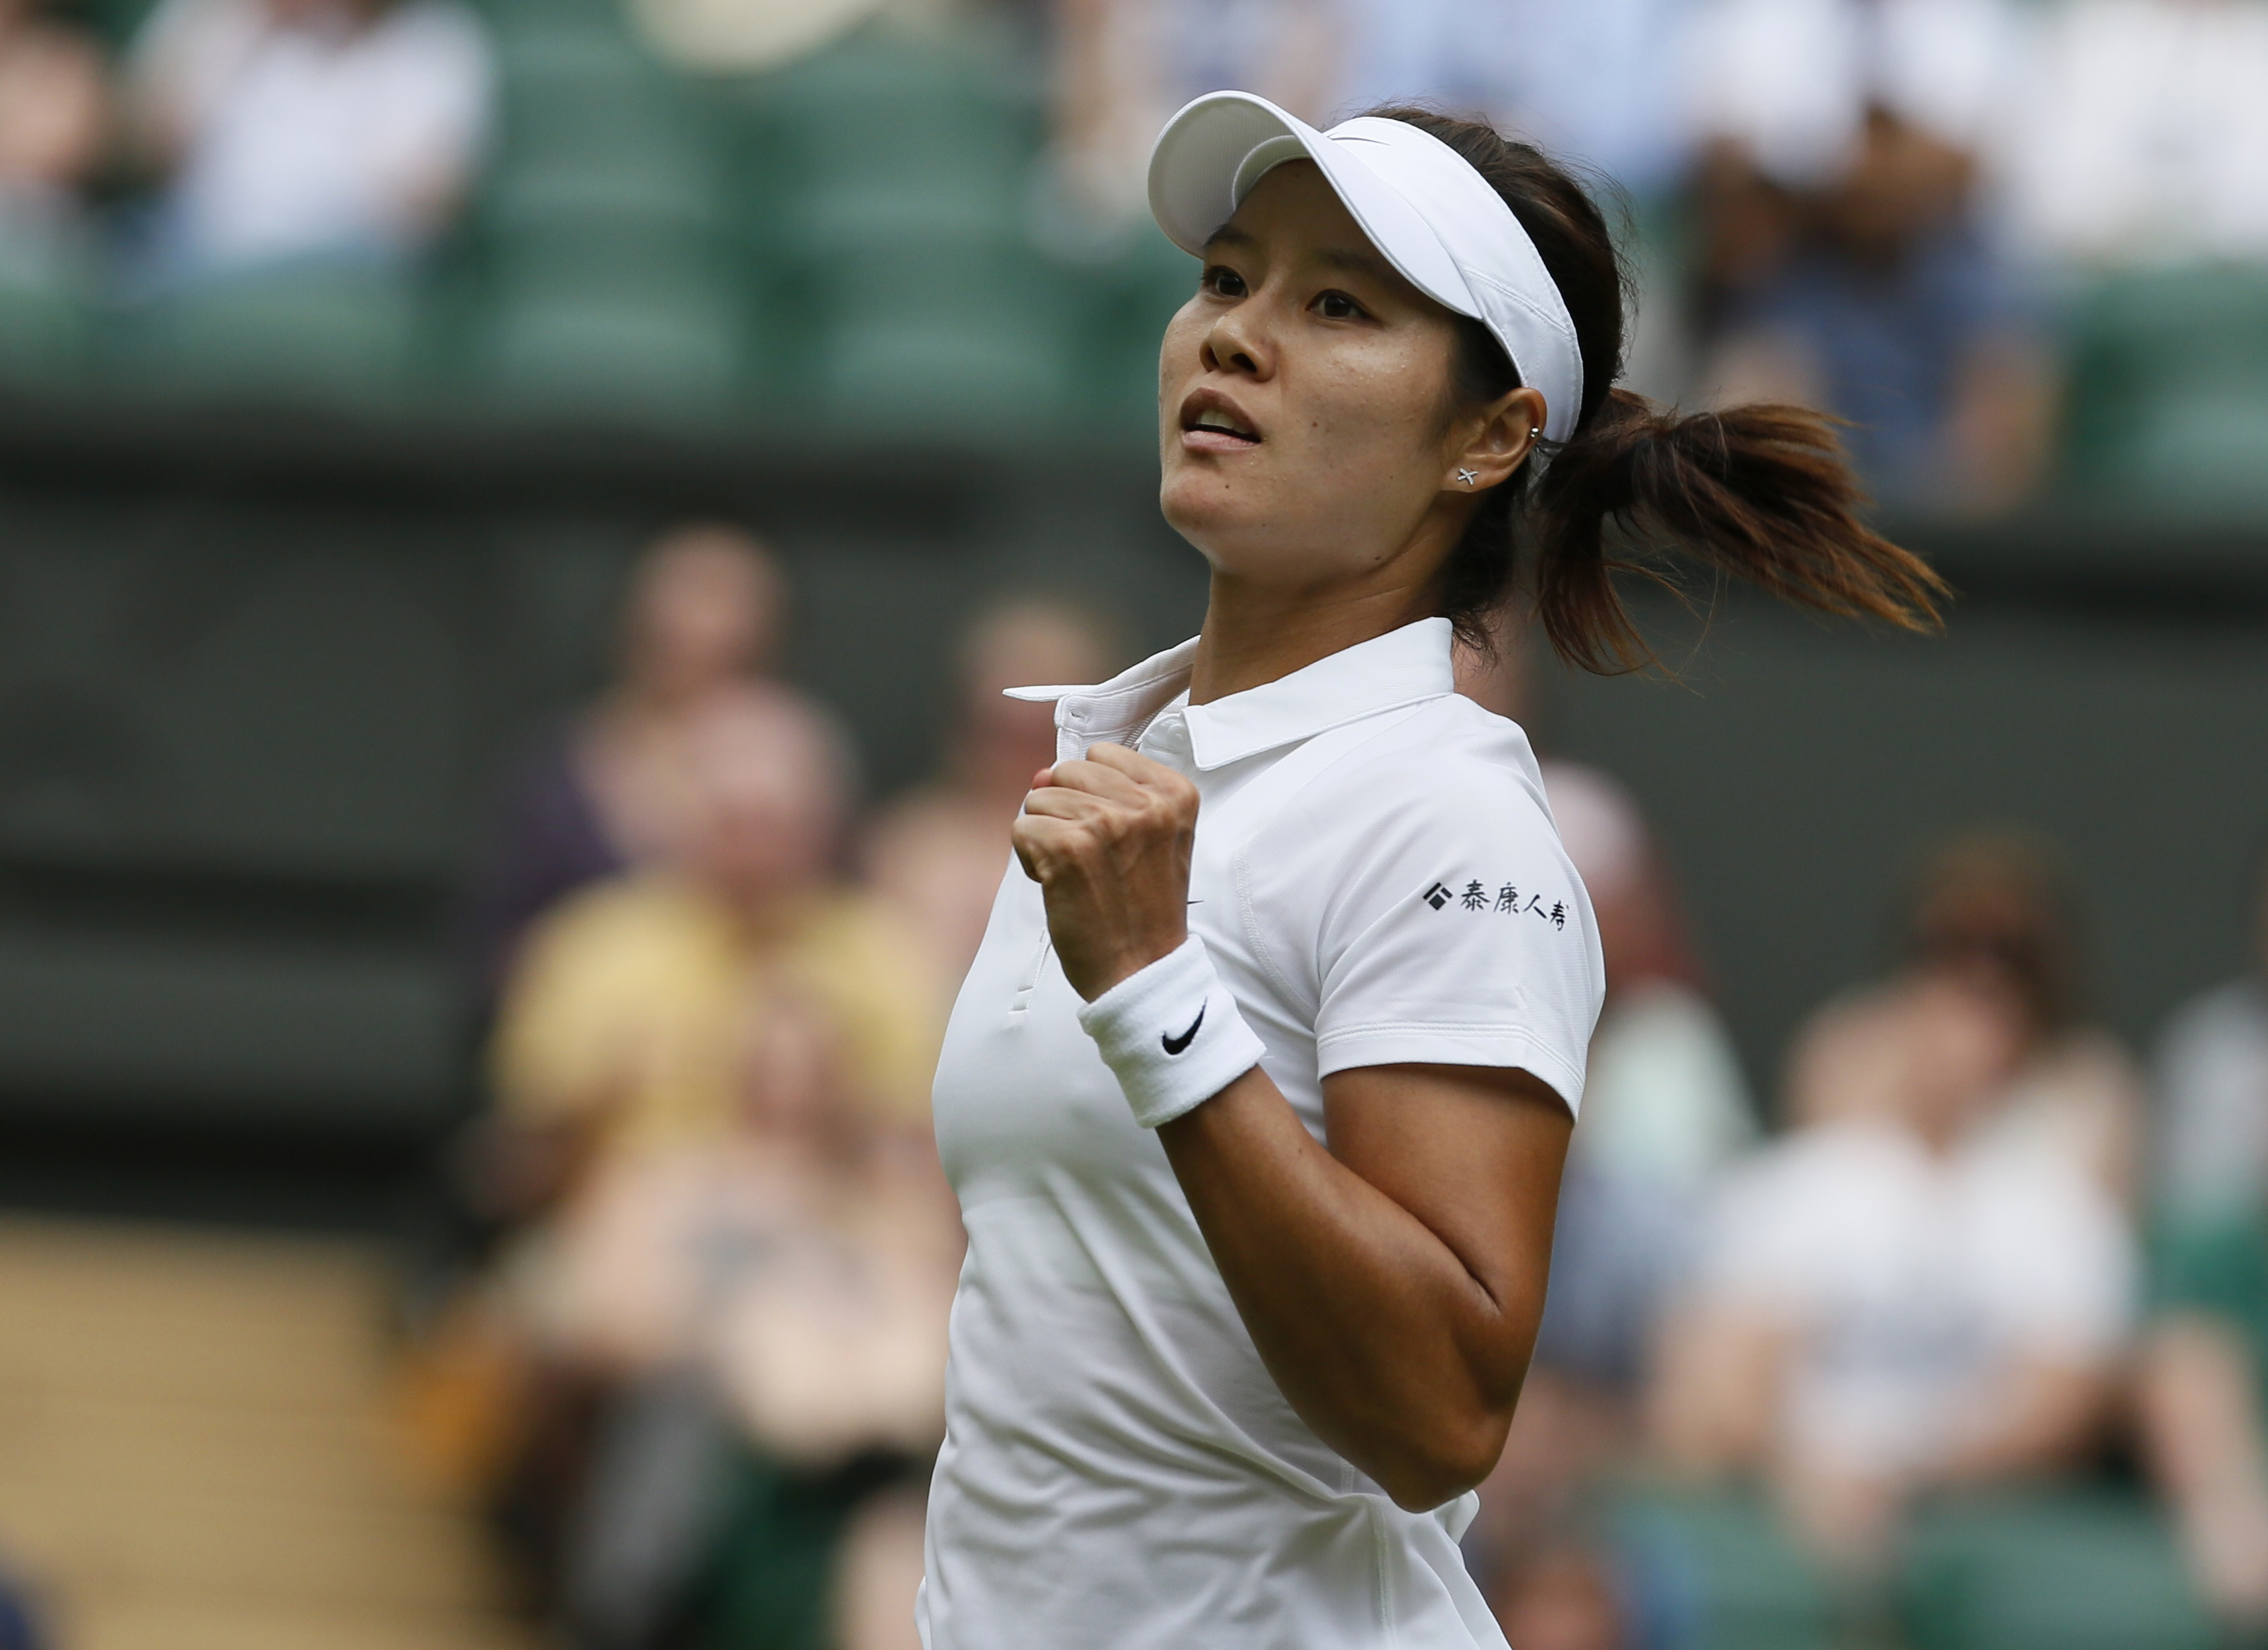 Li Na of China reacts after defeating Paula Kania of Poland in their women's singles tennis match at the Wimbledon Tennis Championships, in London June 23, 2014.